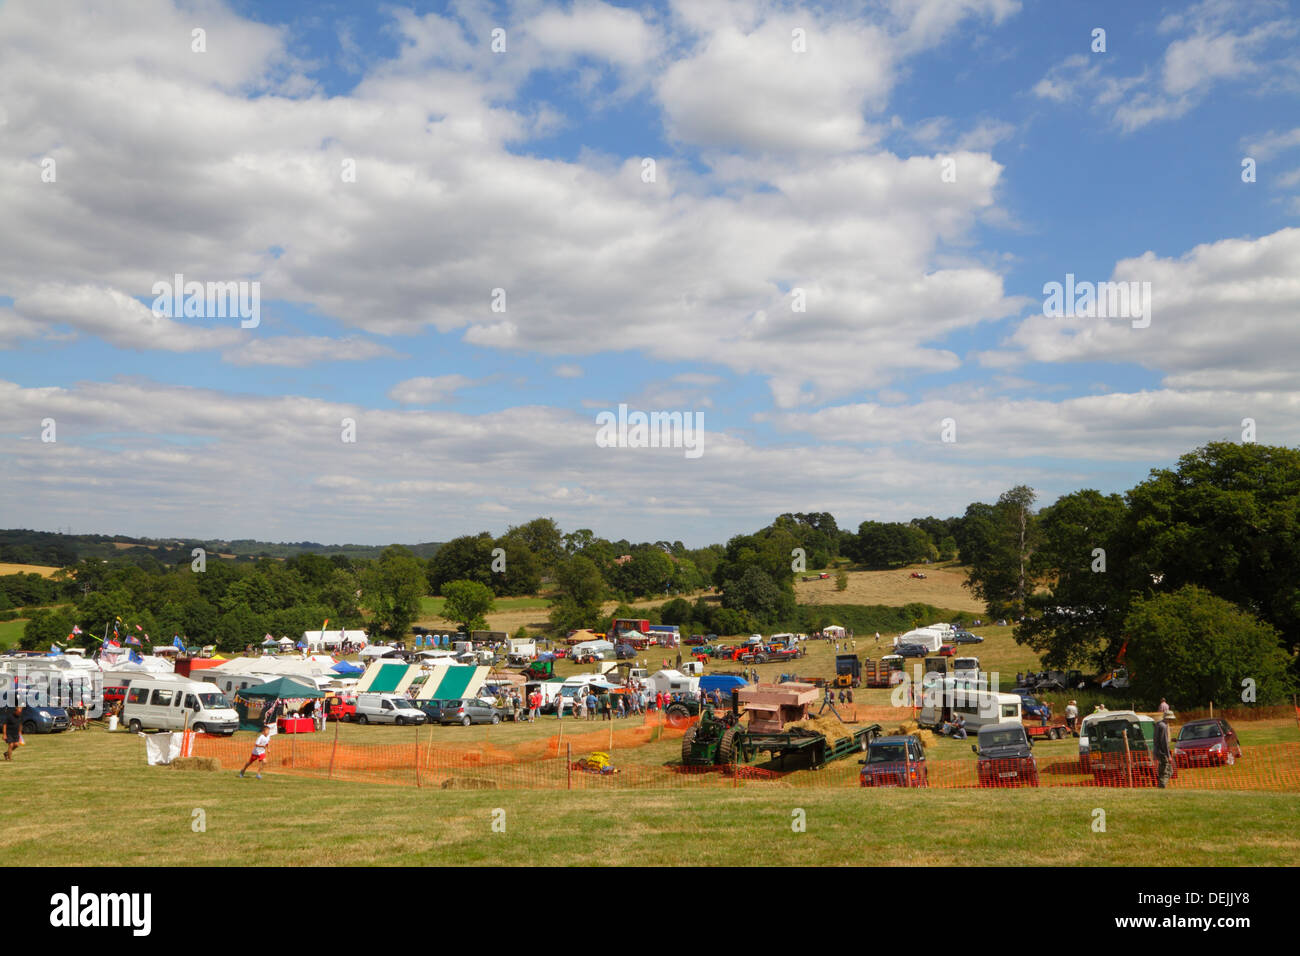 'Past Times' Country Fair at Pestalozzi Sedlescome East Sussex UK - Stock Image